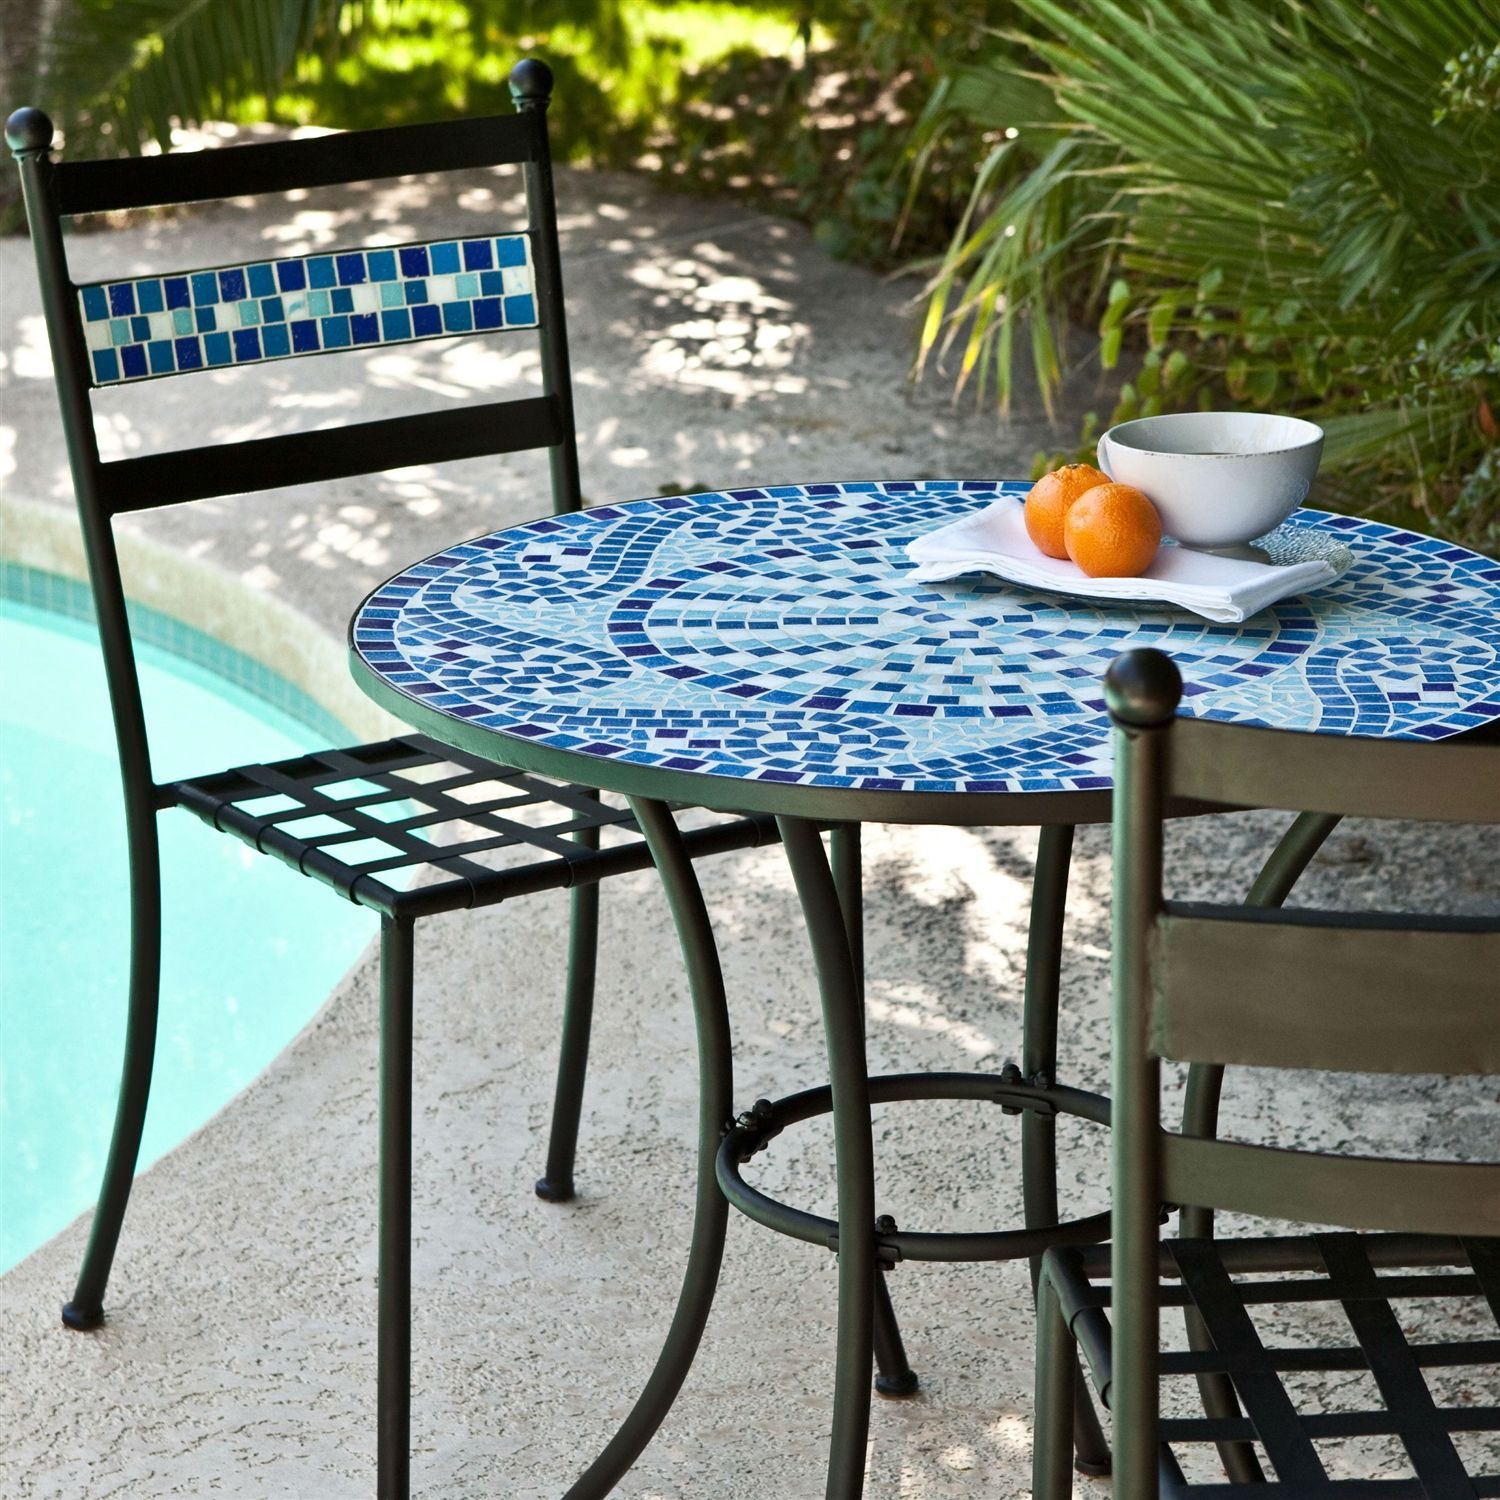 Iron Patio Set Bistro Indoor Or Outdoor Premium Mosaics Tile Tabletop Aqua And Blue A Great Dining Experience